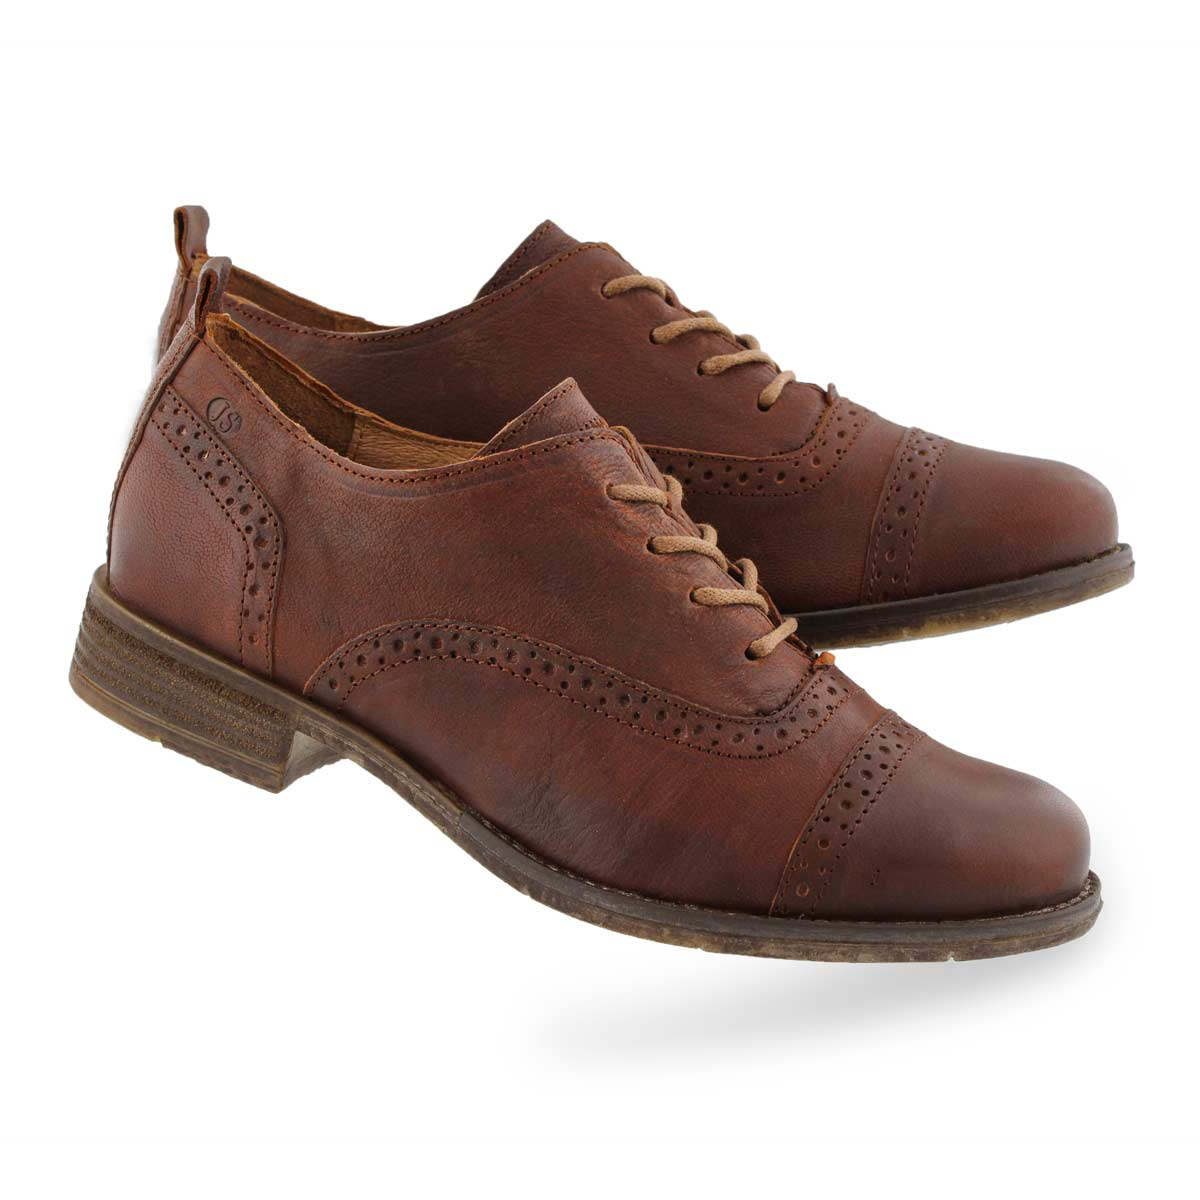 Lds Sienna 73 camel casual oxfords